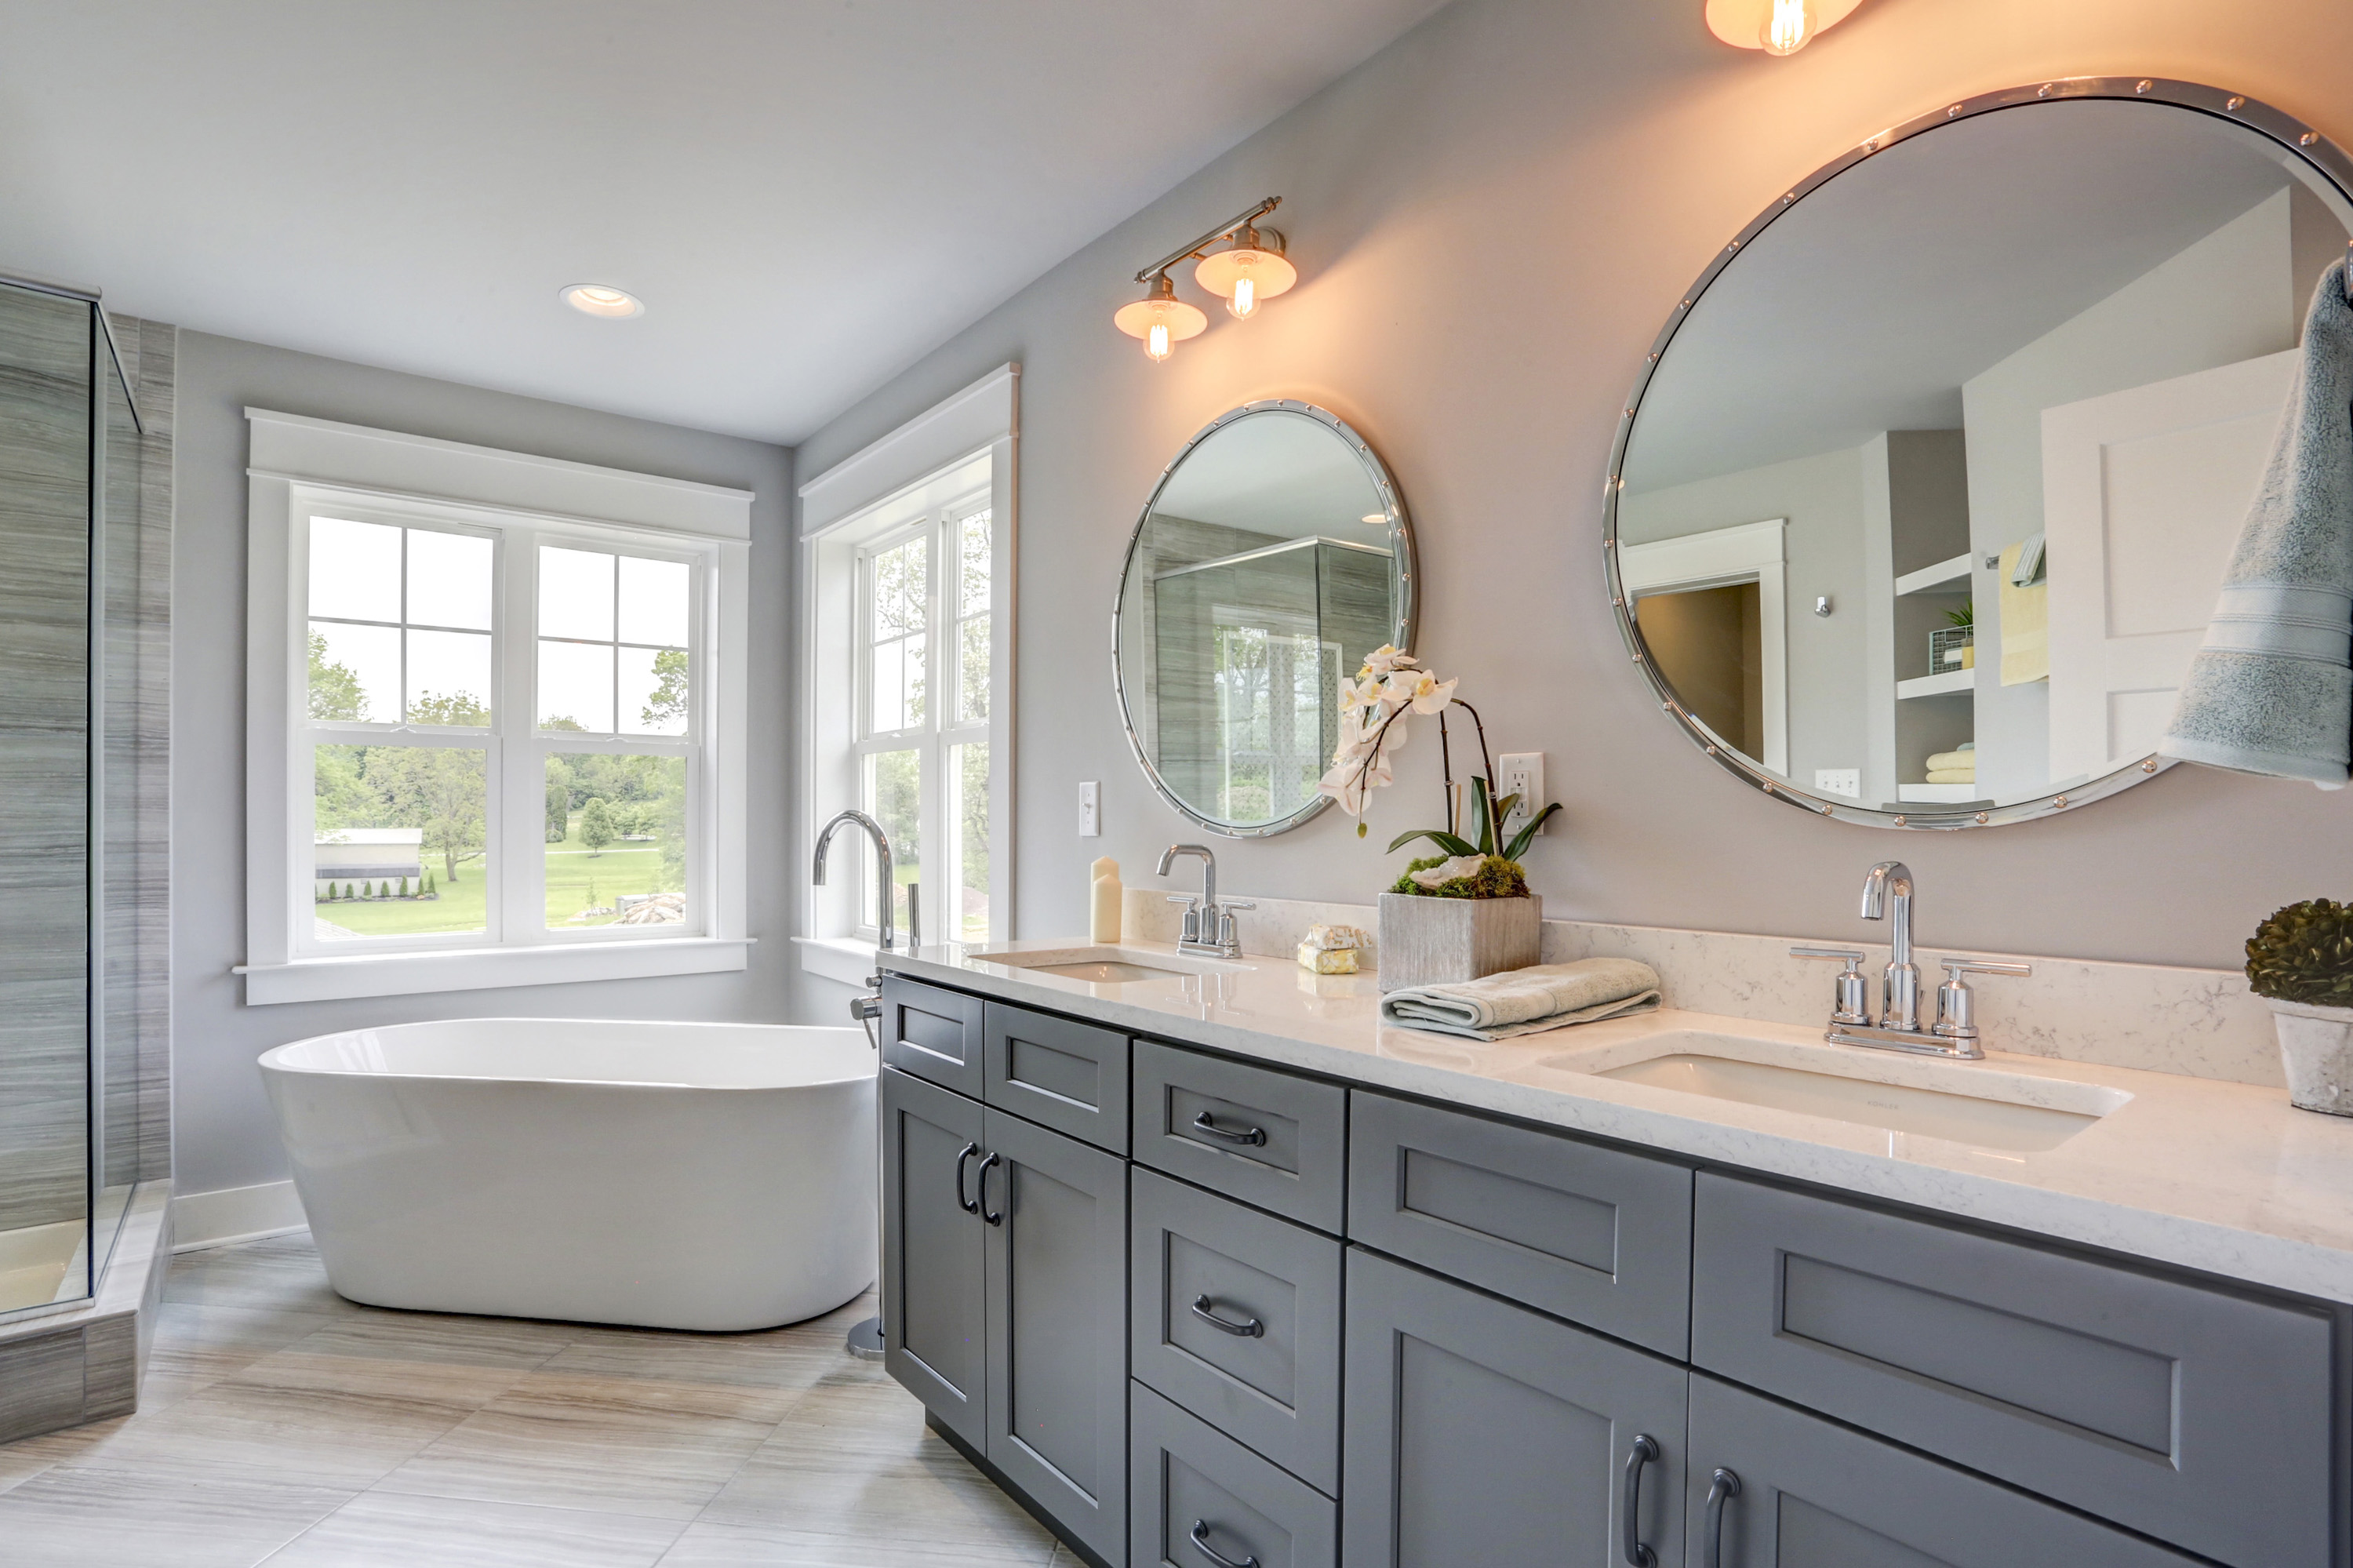 Double sink and soaking tub